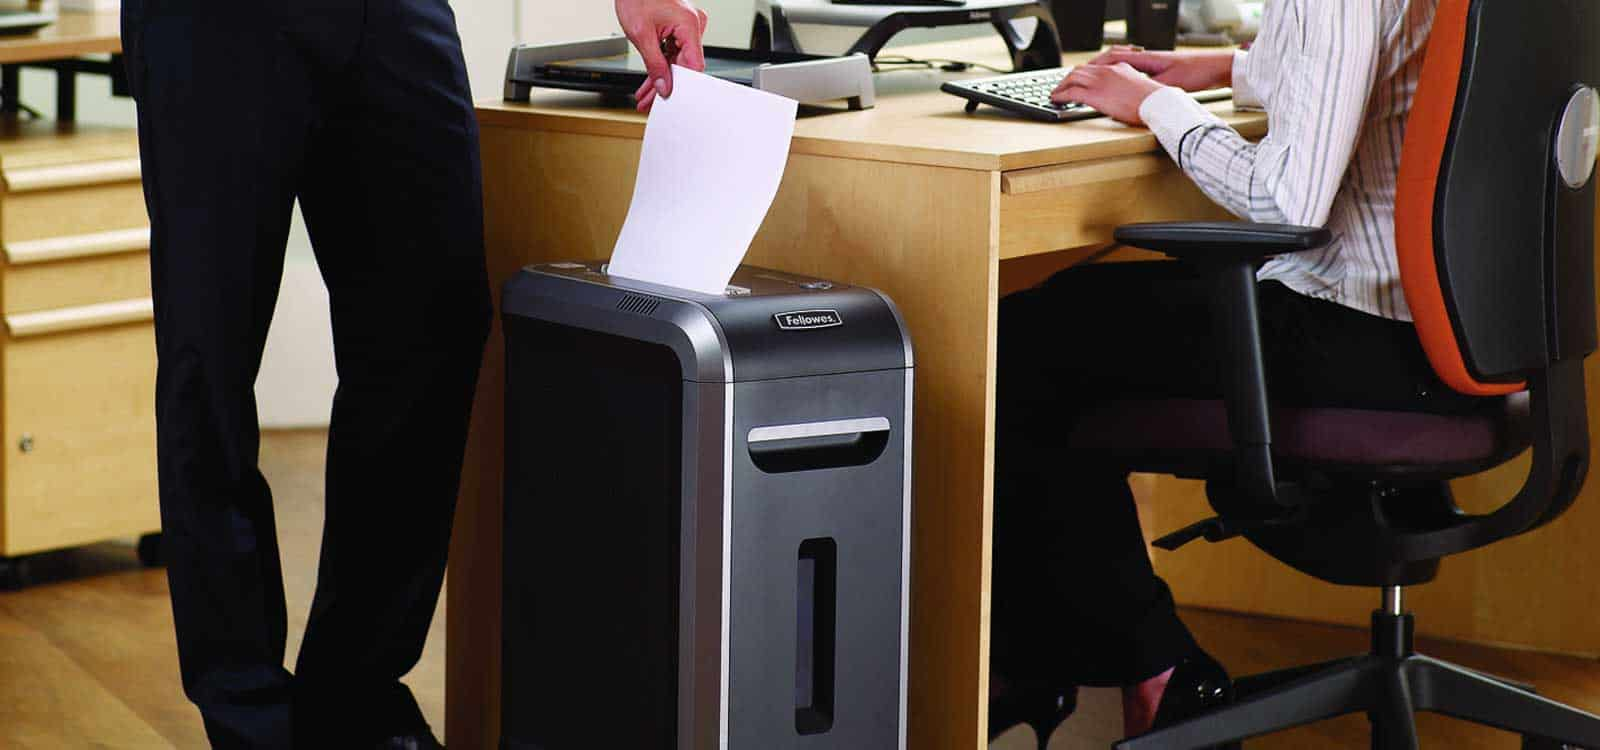 professional small business office paper shredder